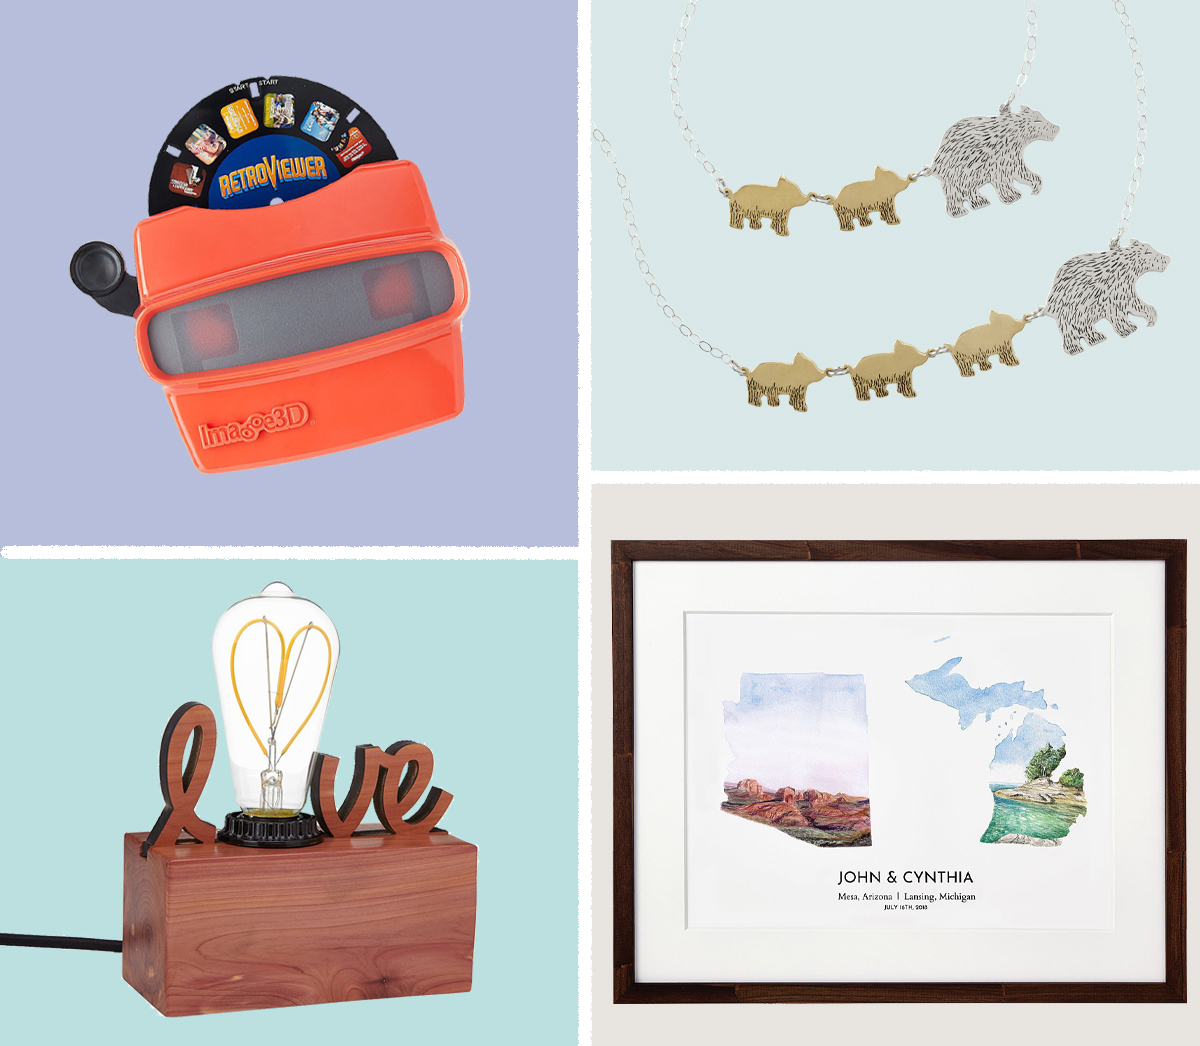 Uncommongoods Blogs About Gift Ideas Artists Designers And More